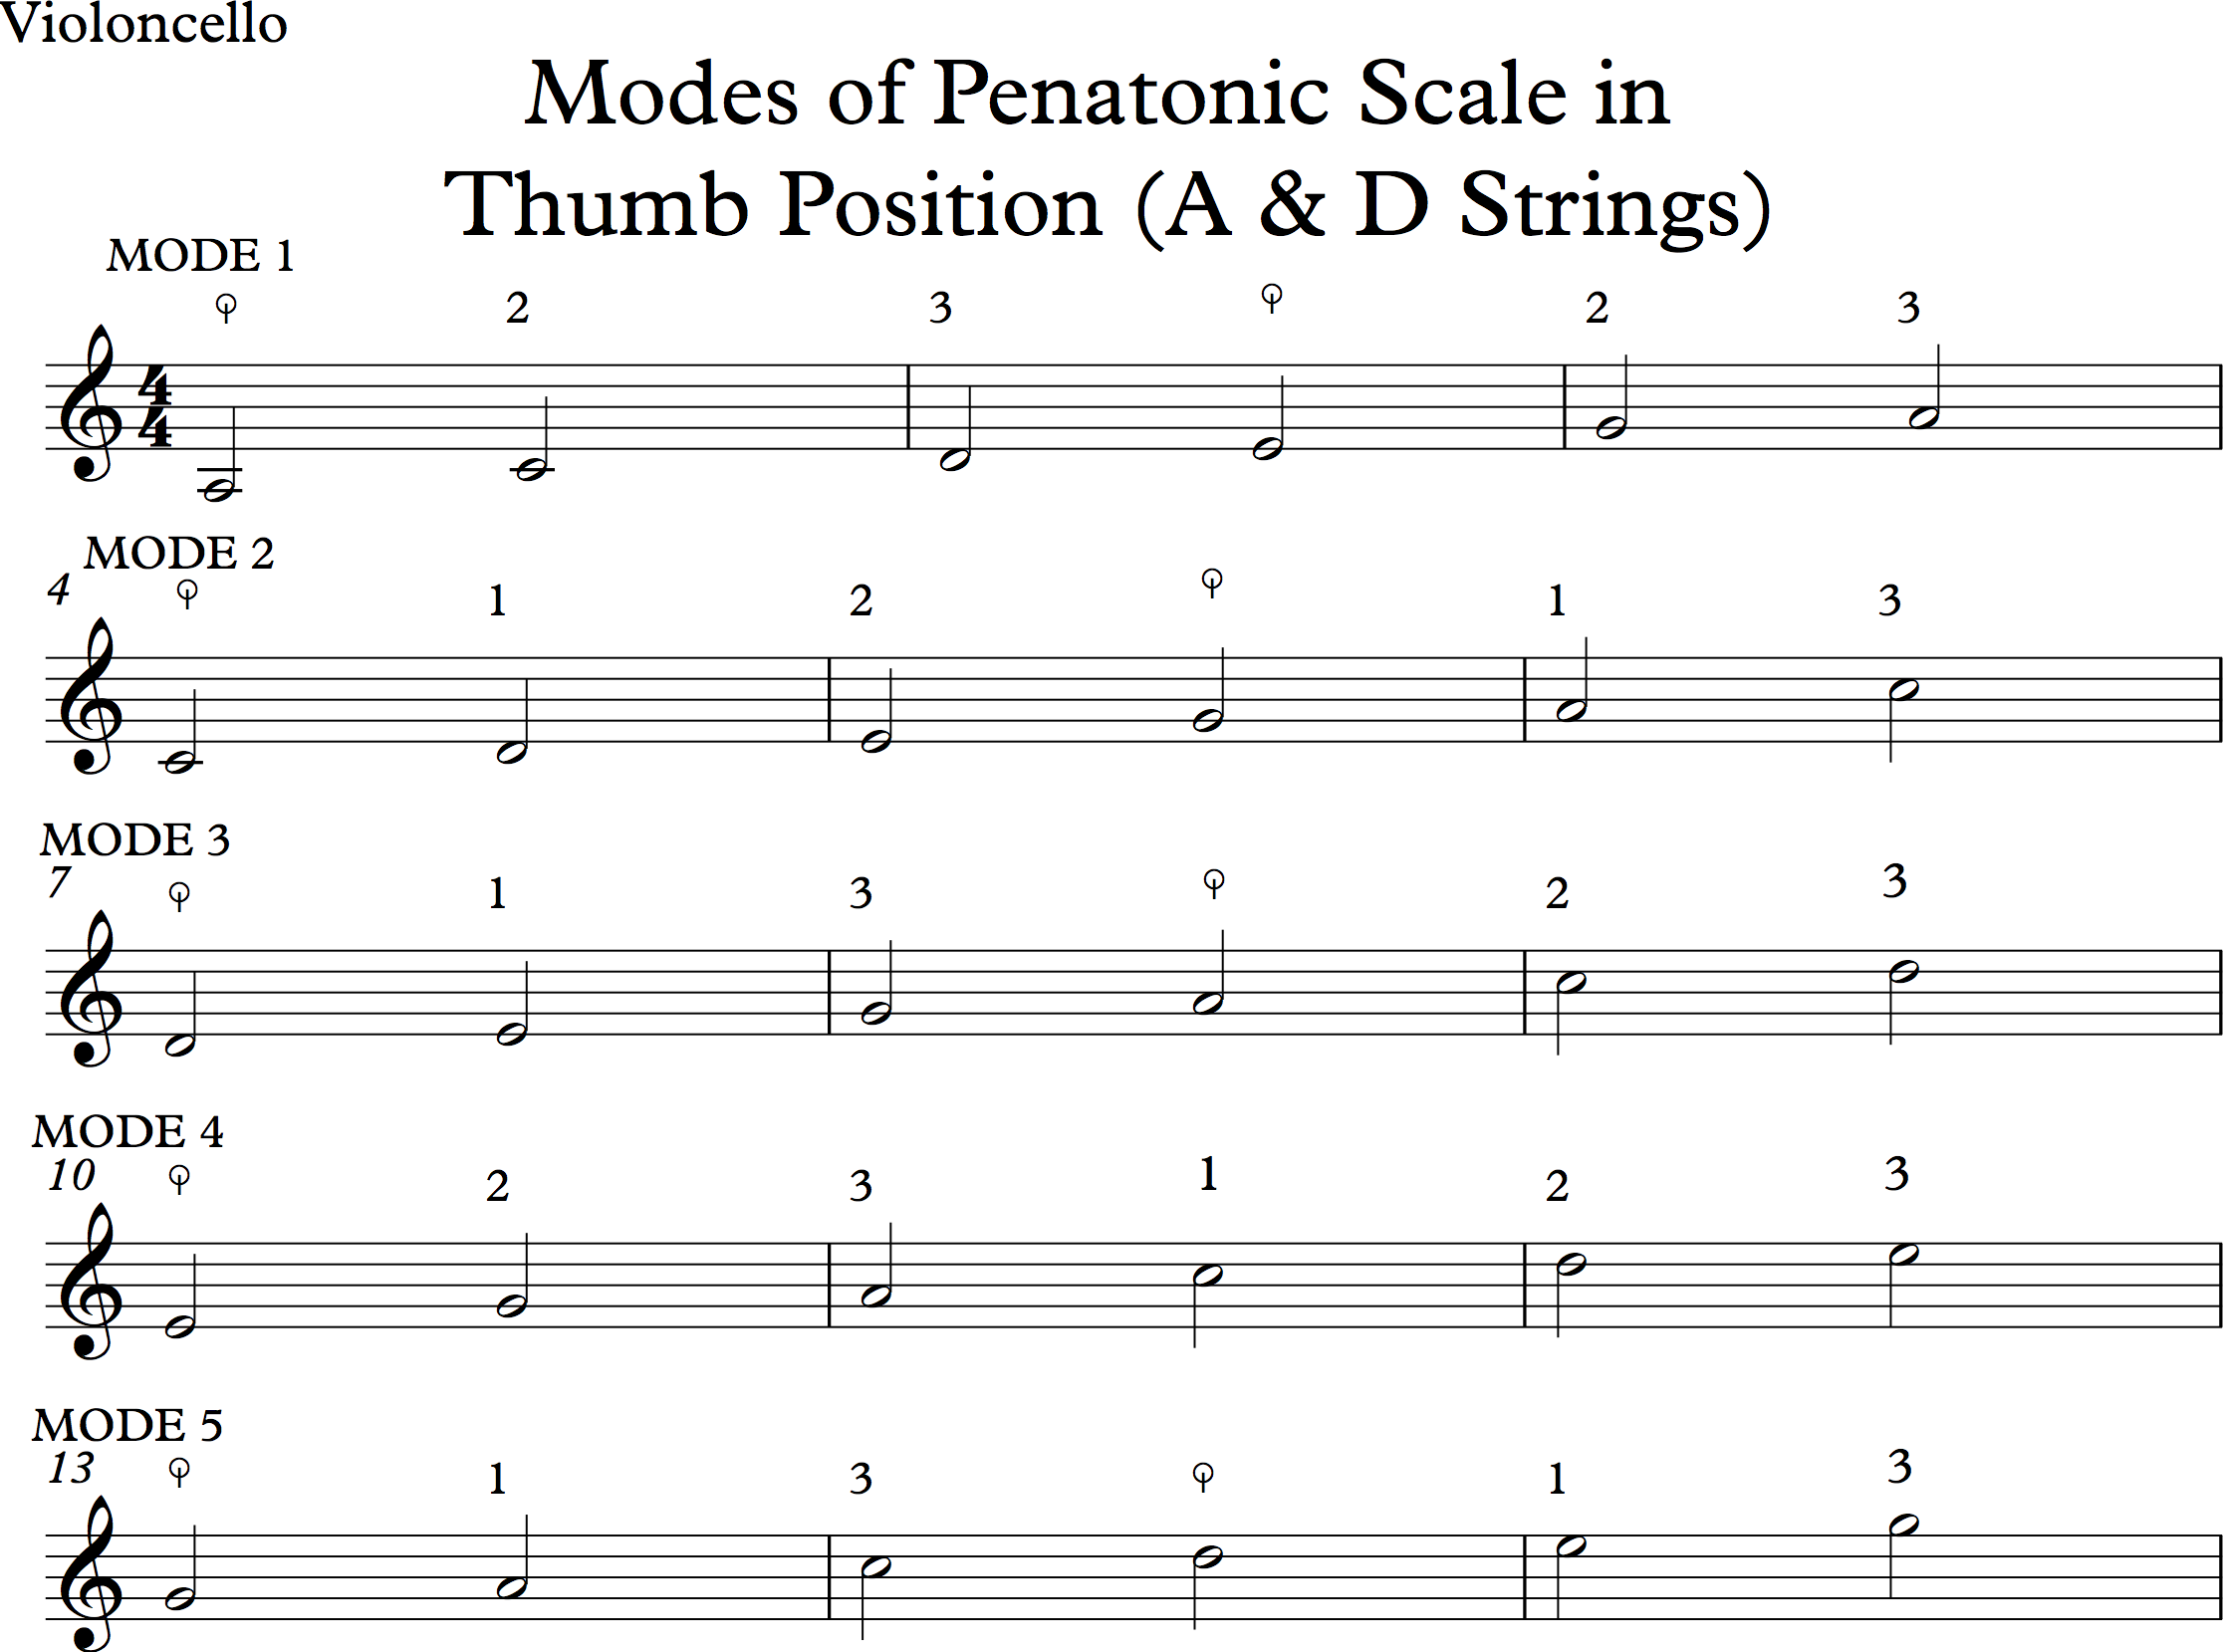 Modes of Pentatonic Scale Page 1